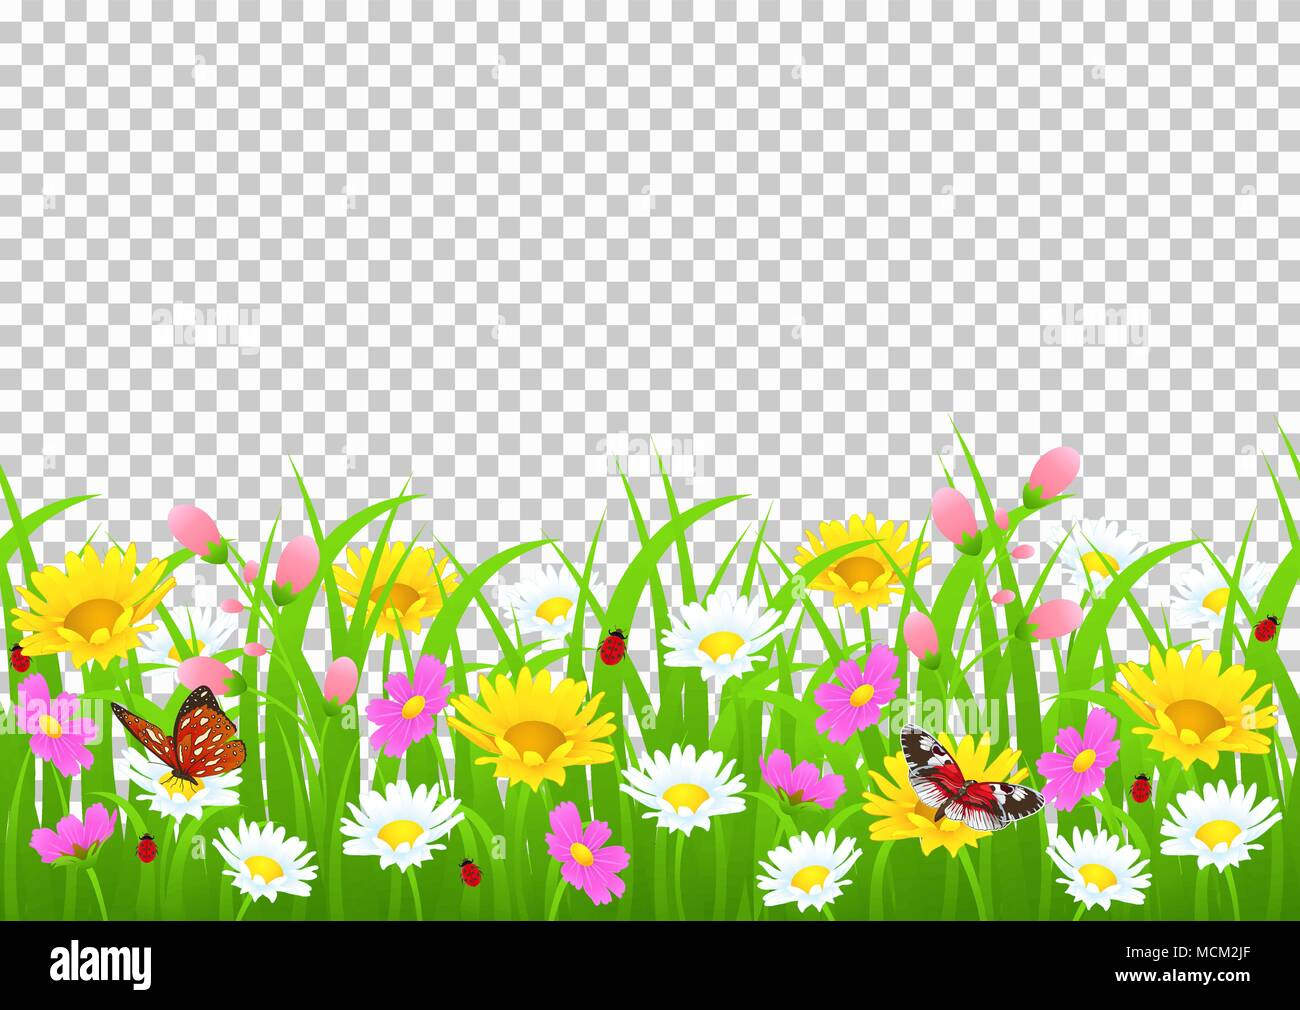 Transparent Border Stock Vector Images - Alamy